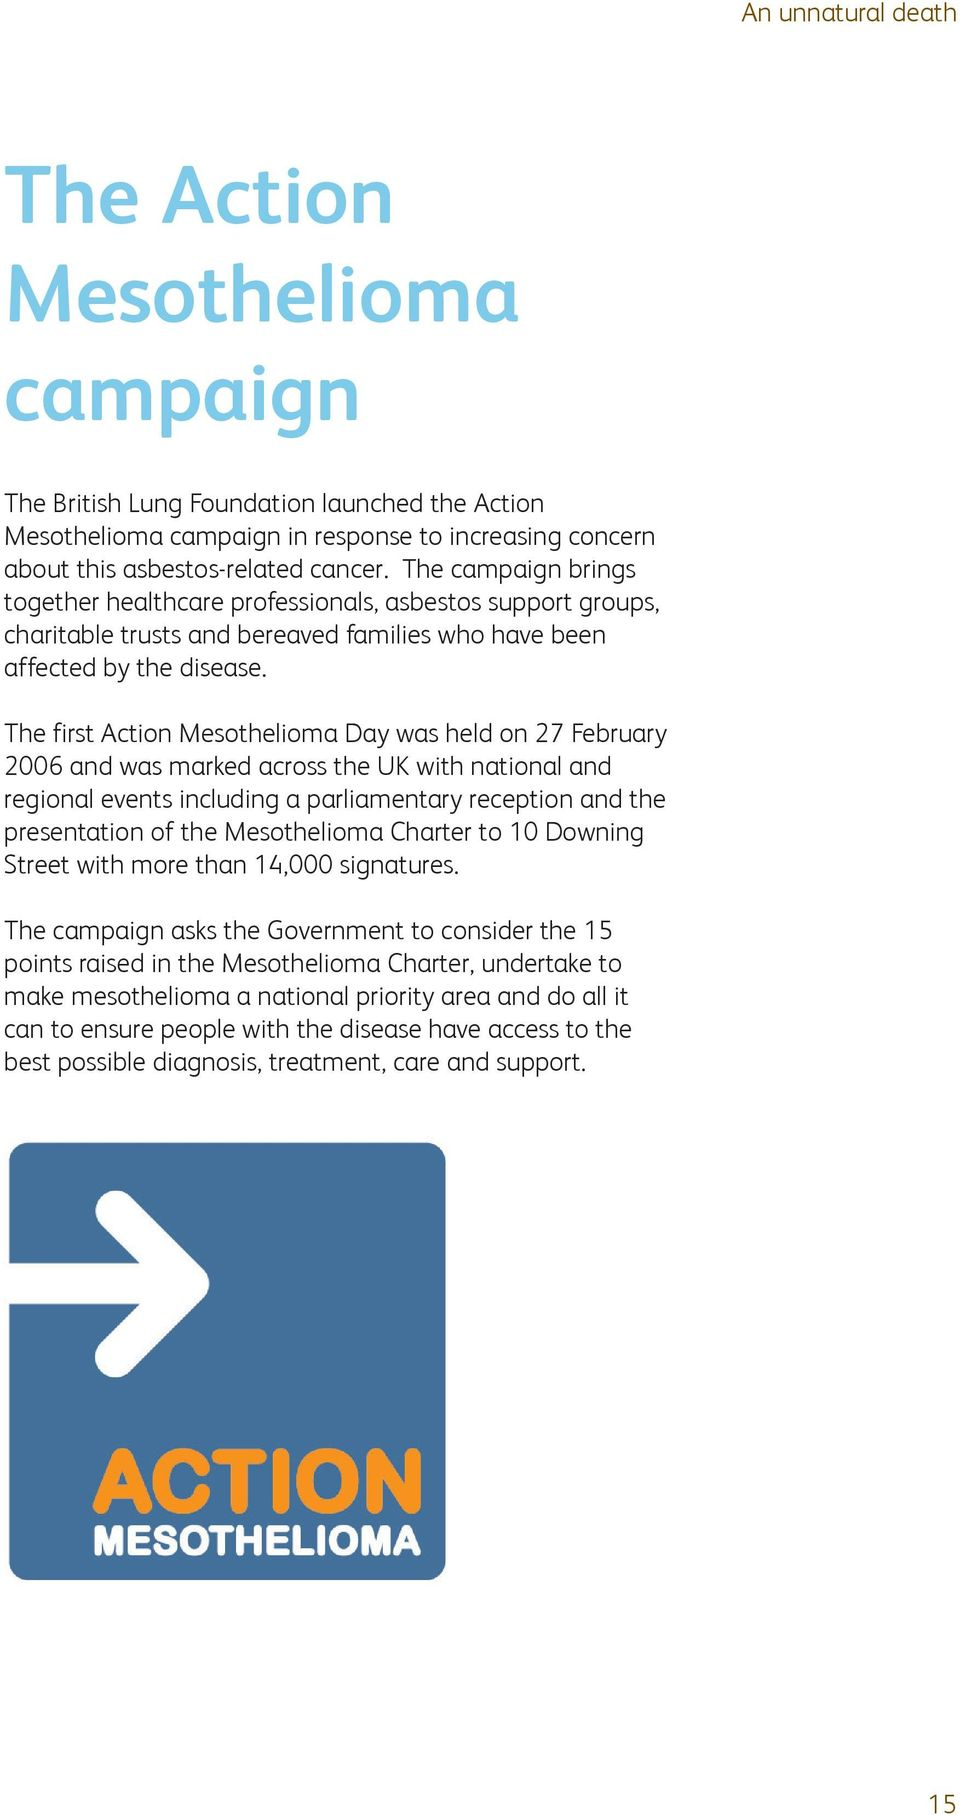 The first Action Mesothelioma Day was held on 27 February 2006 and was marked across the UK with national and regional events including a parliamentary reception and the presentation of the